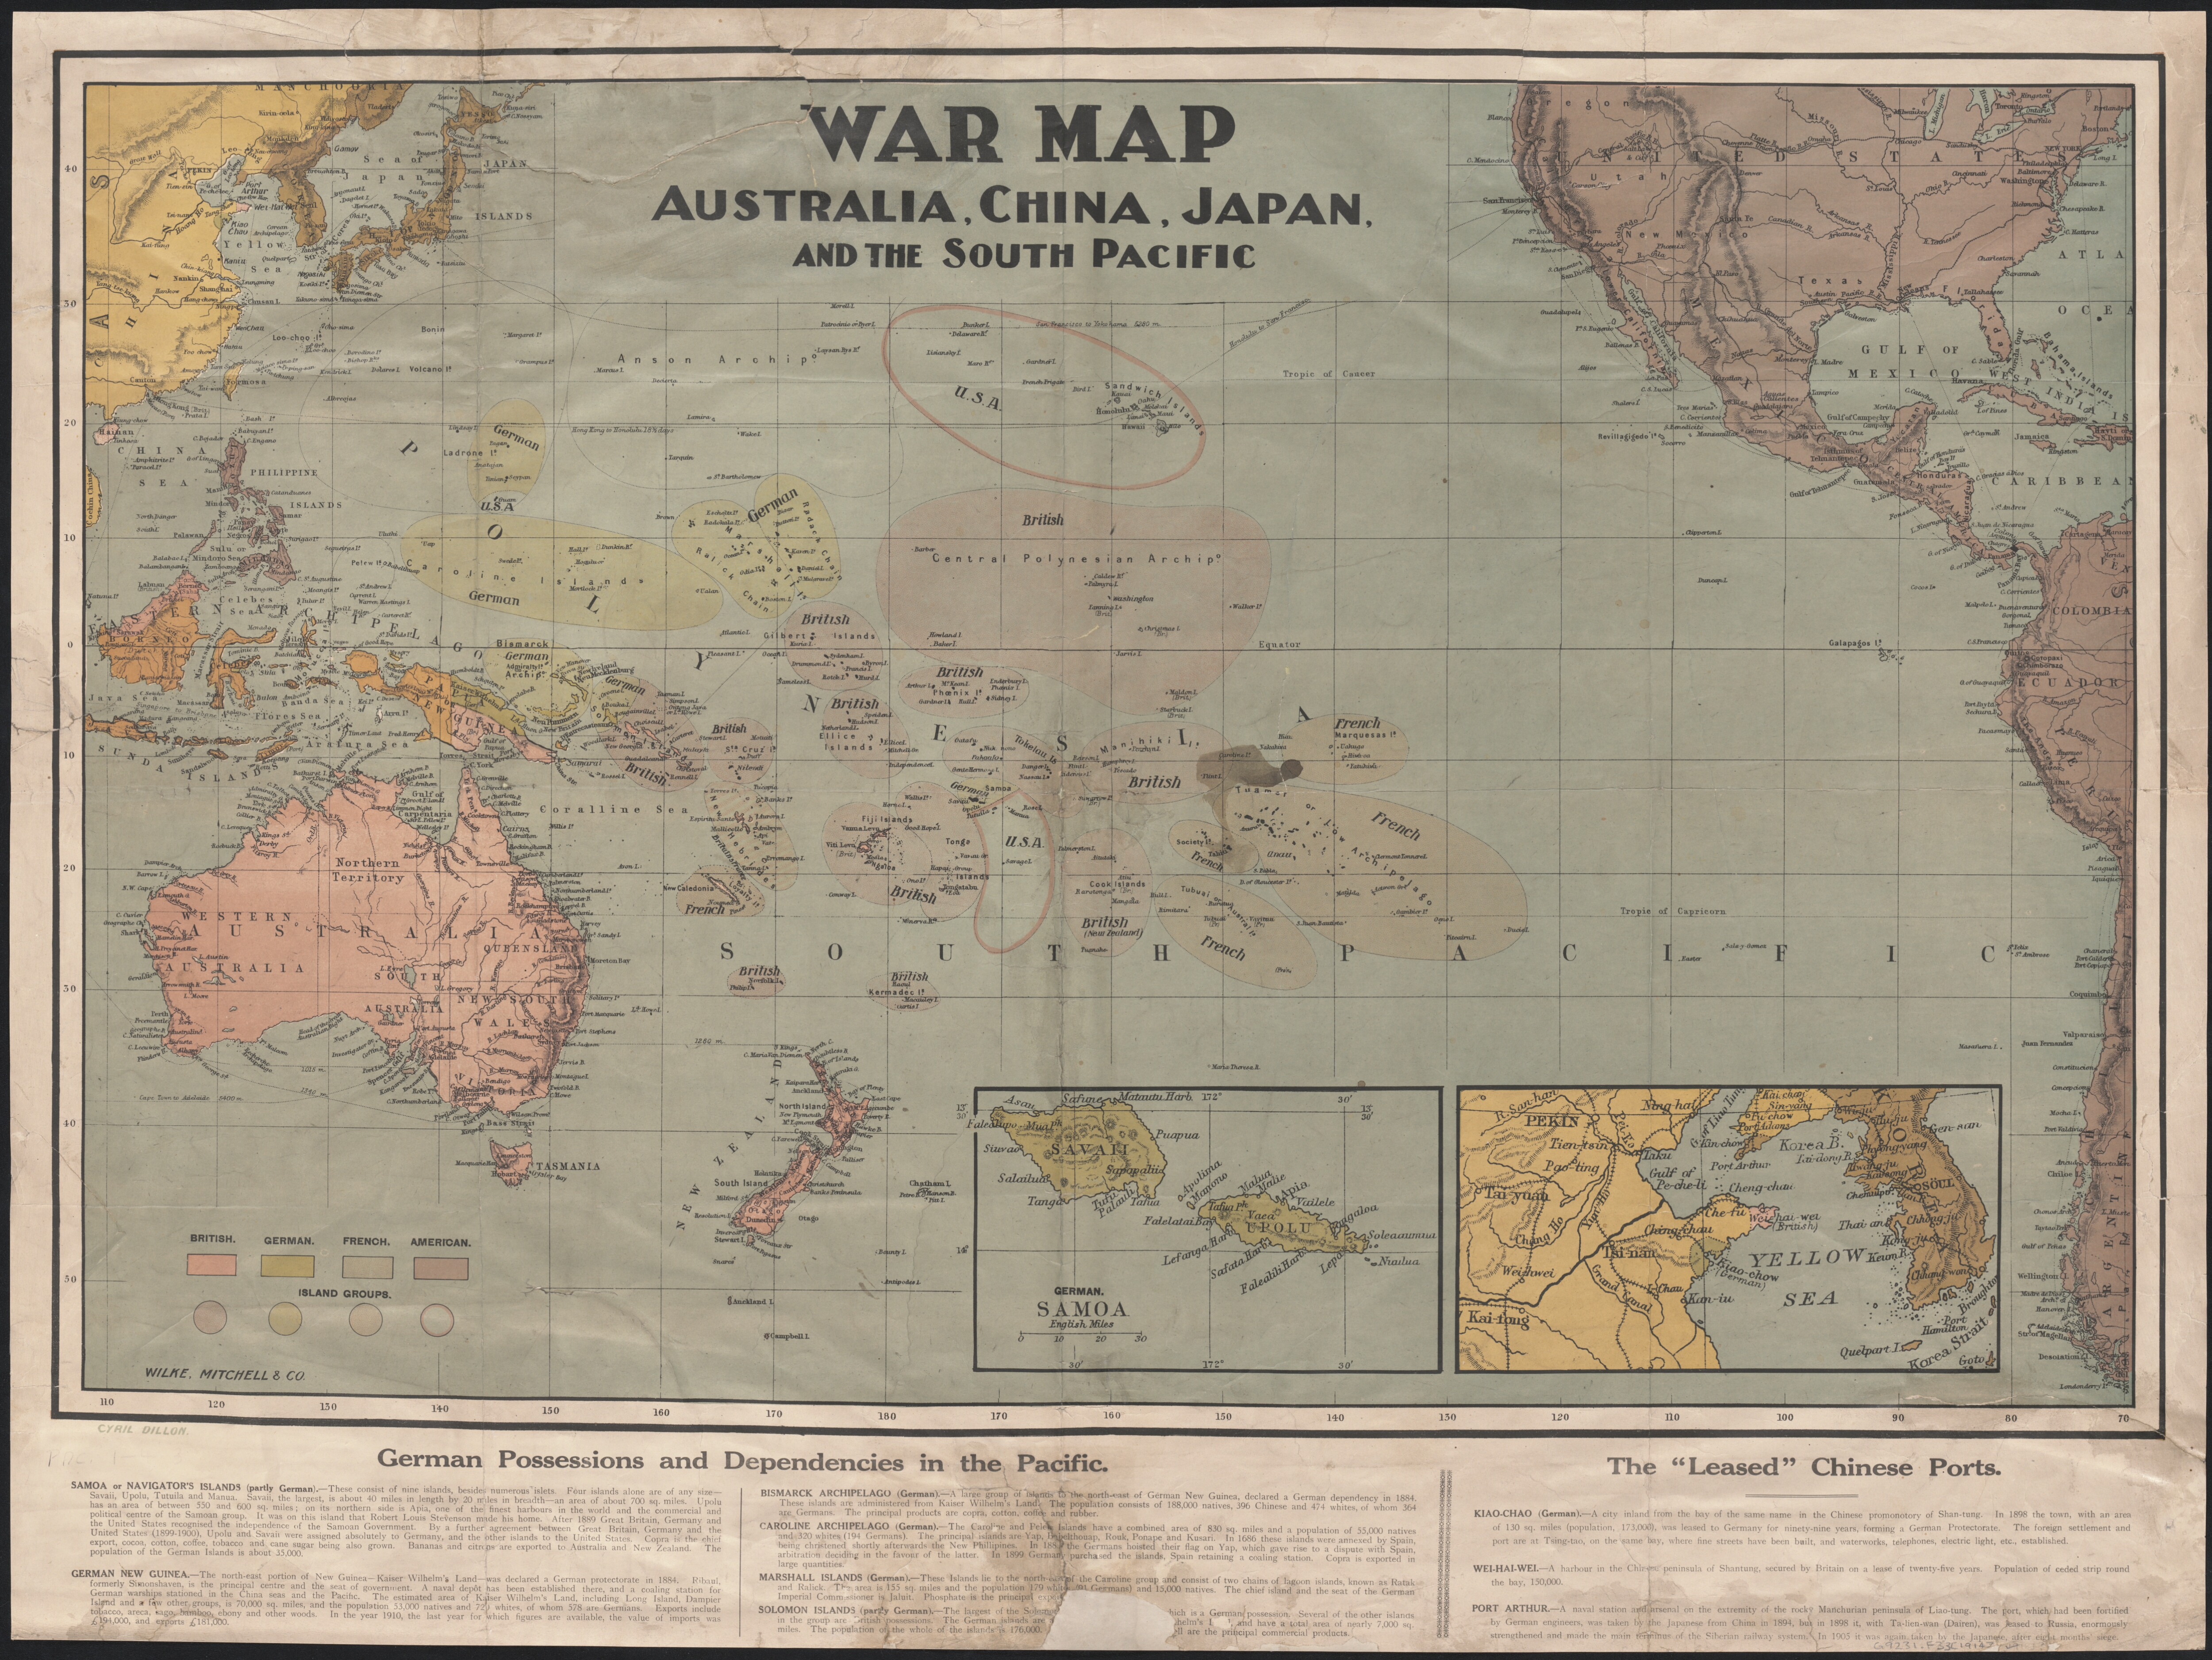 a history of world war ii in the south pacific